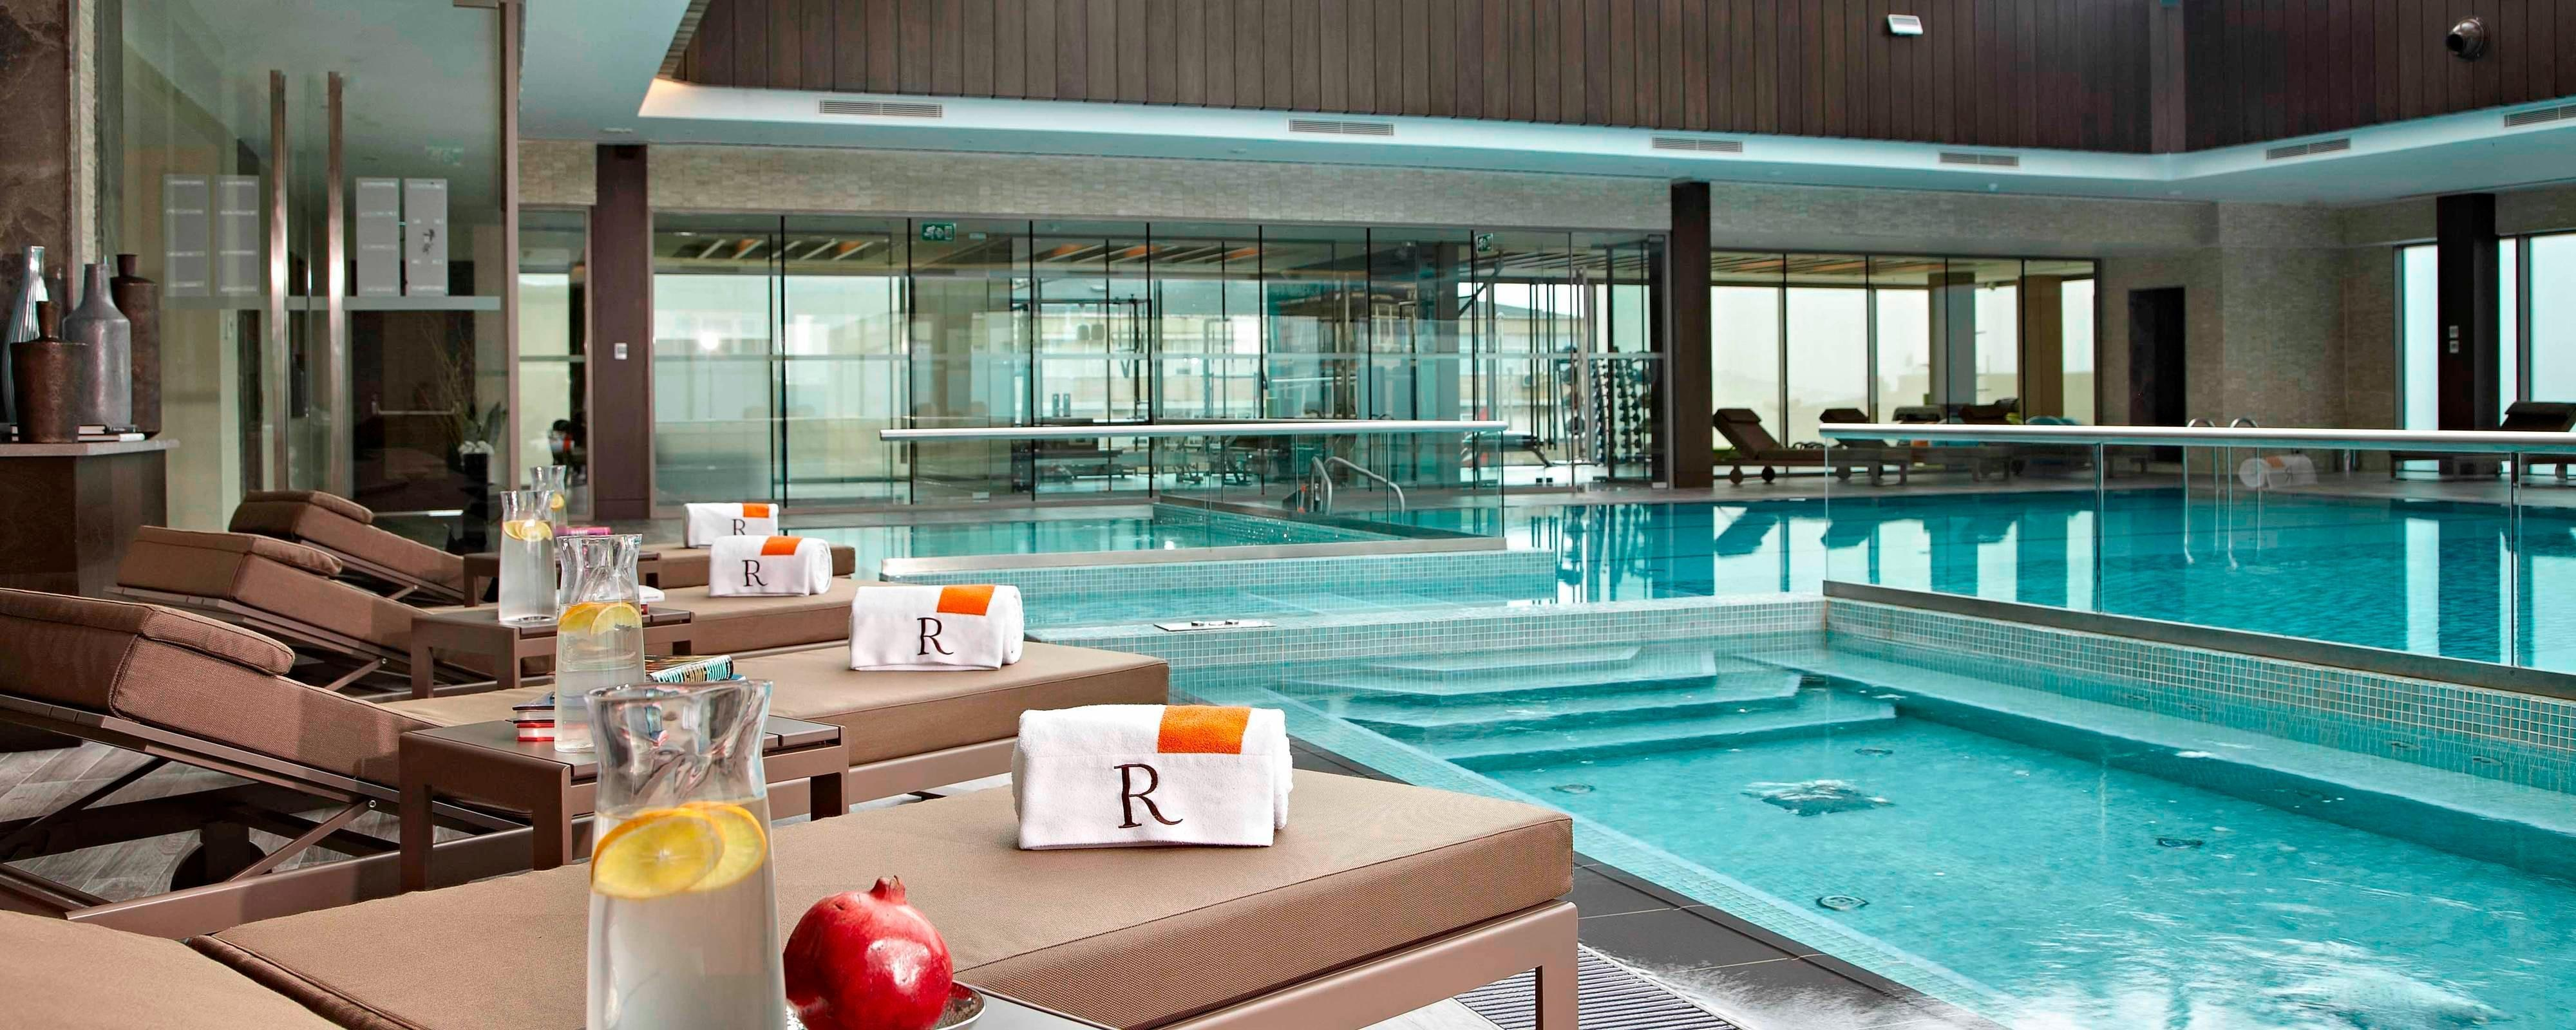 Istanbul Hotels With On Site Swimming Pool Bosphorus Renaissance Hotel